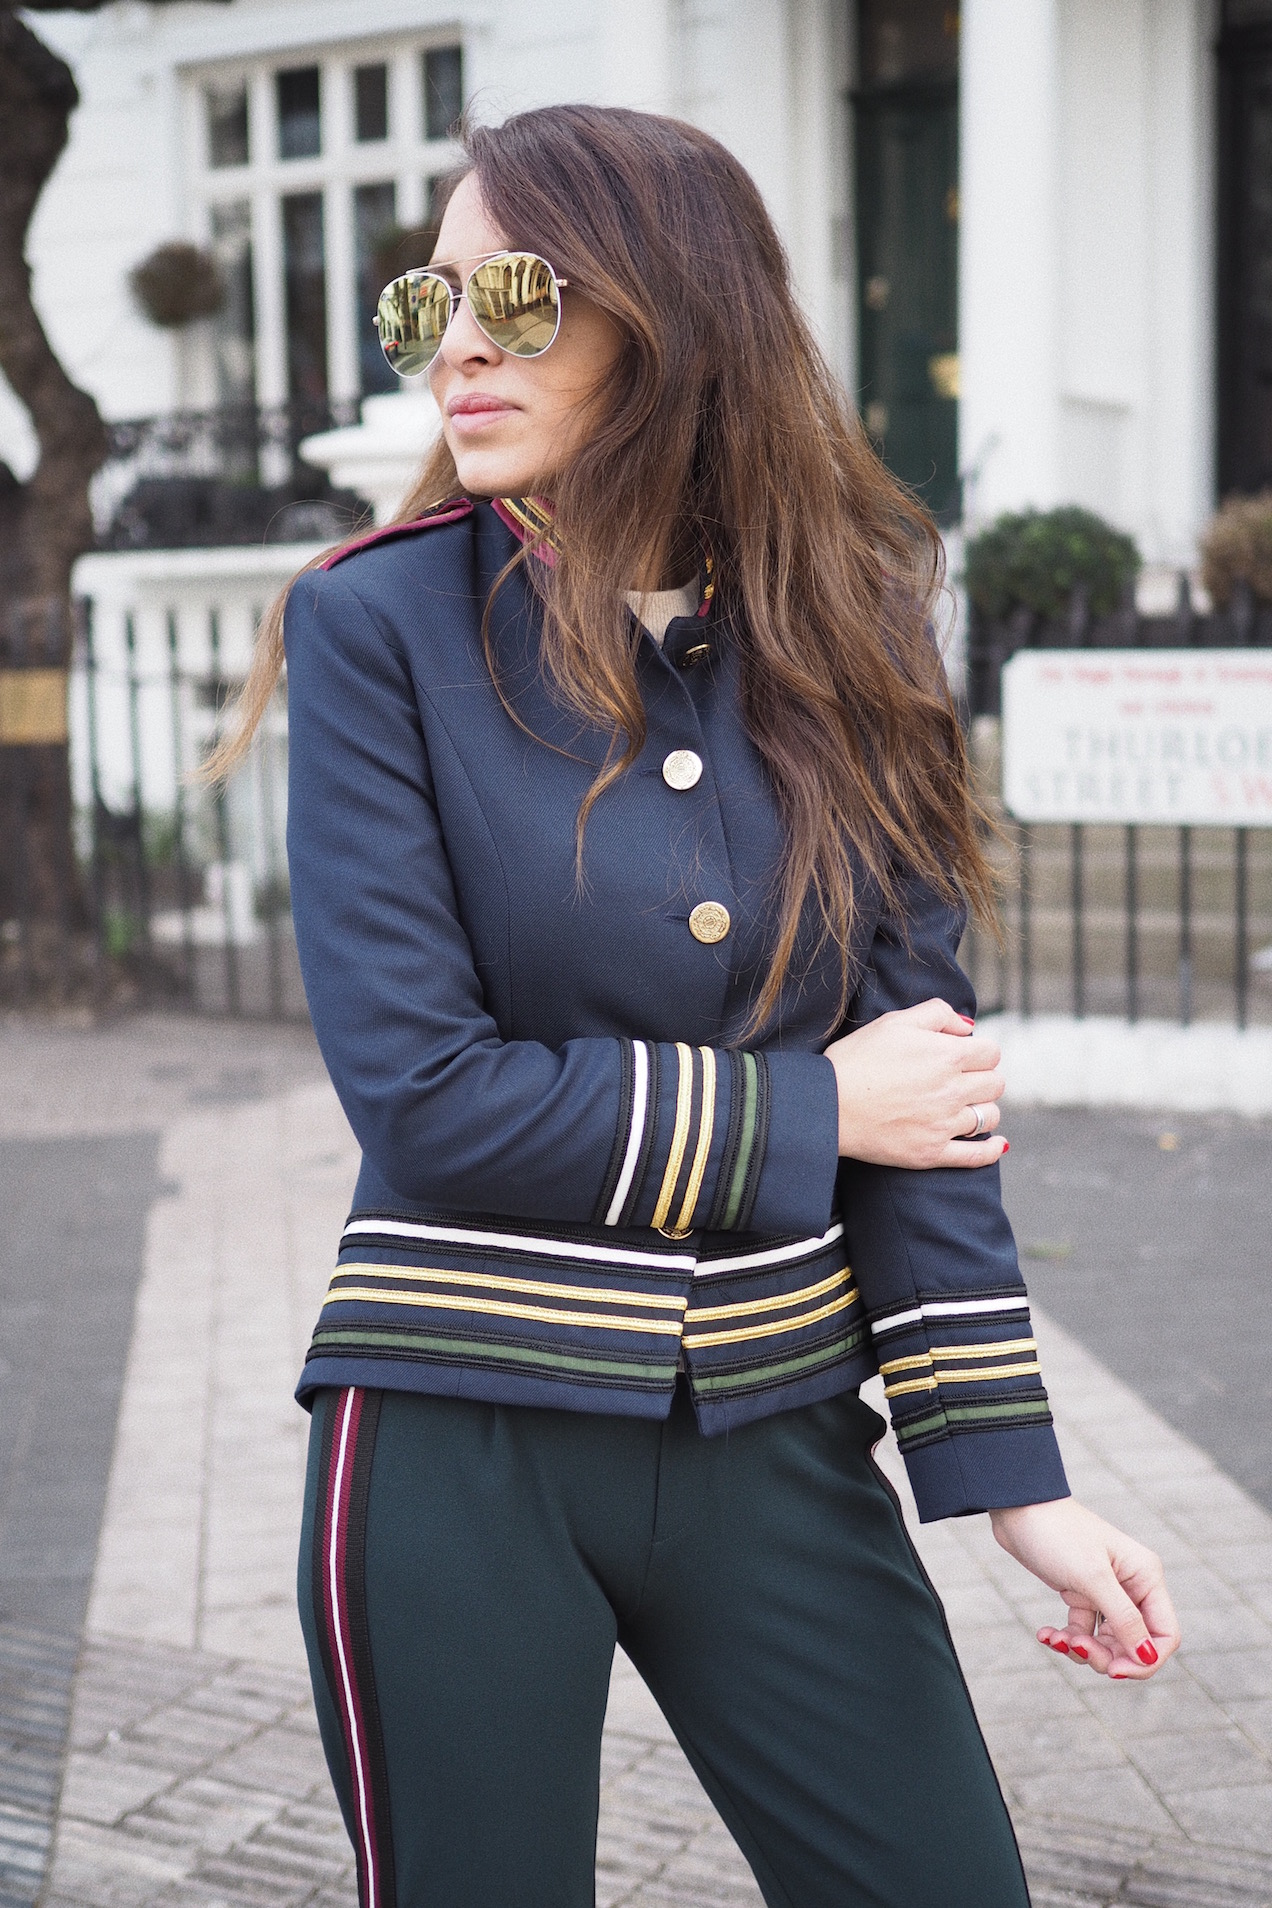 How to wear Military Style